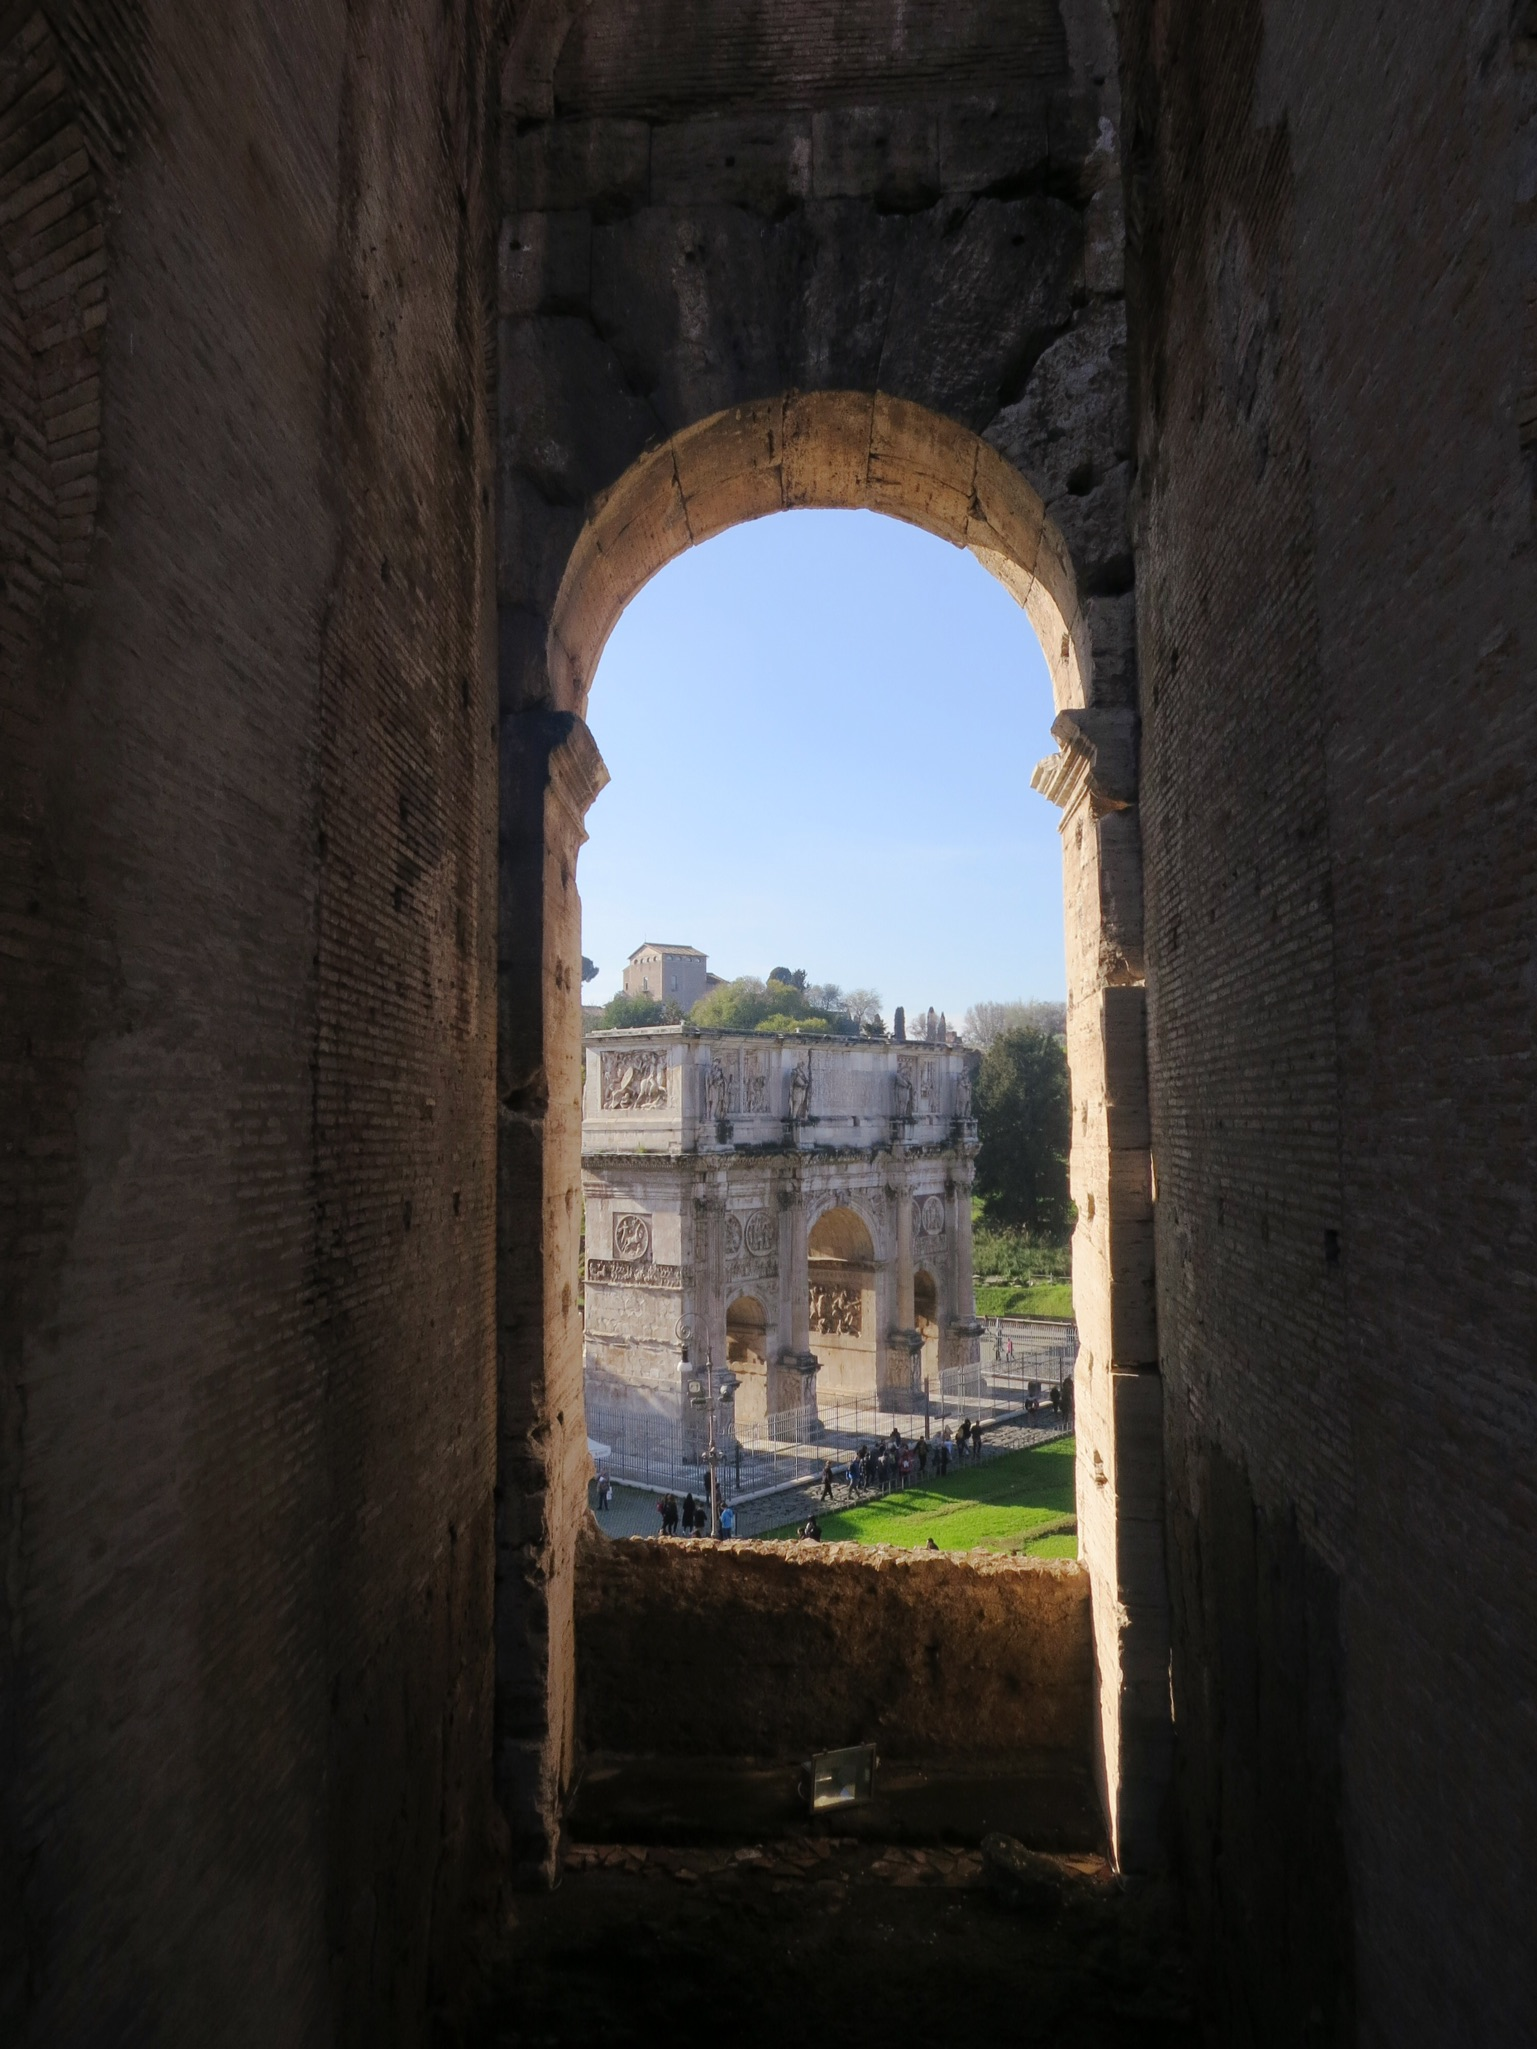 An arch in the Colosseum frames the Arch of Constantine in Rome, Italy.